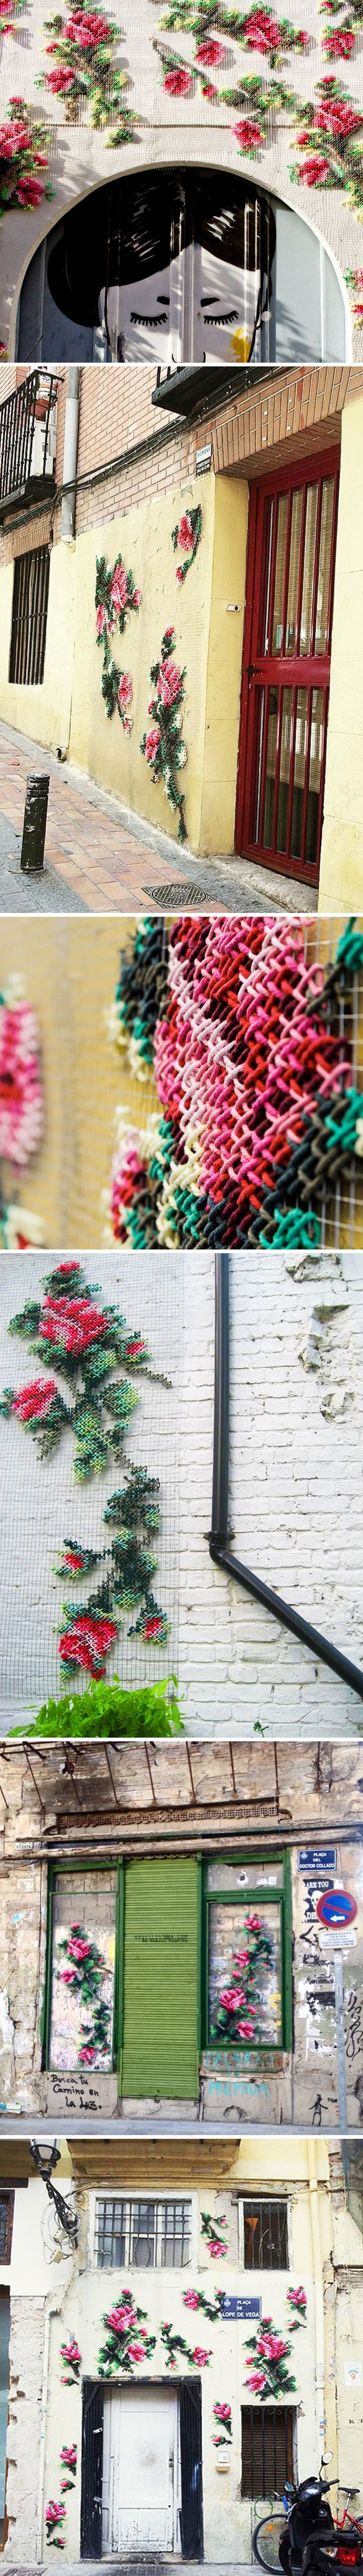 What!? Urban cross-stitching… oh my word. This is the work of artist/set designer Raquel Rodrigo. Wire mesh and some very colorful rope working together to create lovely gardens on the walls around Ma